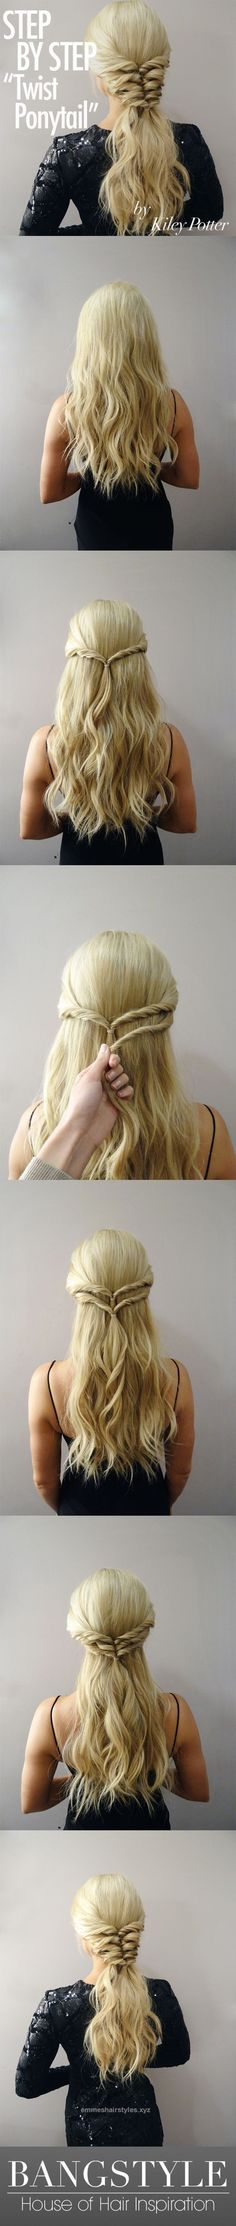 Insane 20 Gorgeous Braided Hairstyles For Long Hair – Page 6 of 9 – Trend To Wear  The post  20 Gorgeous Braided Hairstyles For Long Hair – Page 6 of 9 – Trend To Wear…  appeared first on  Emm ..